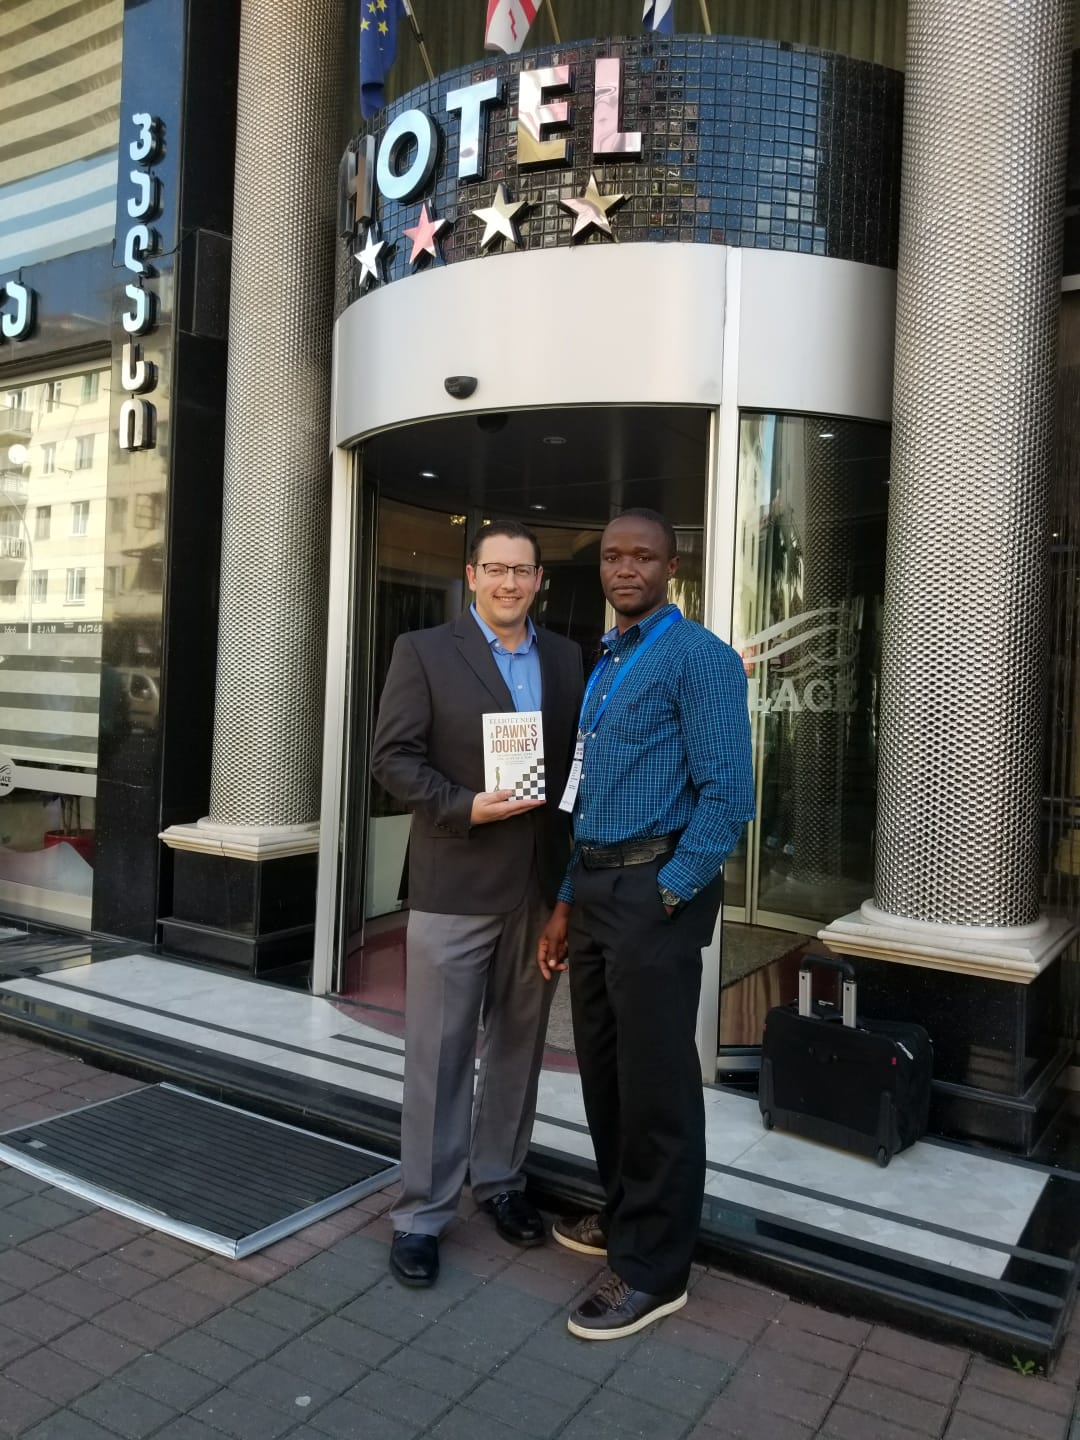 Giving Robert Katende a copy of A Pawn's Journey